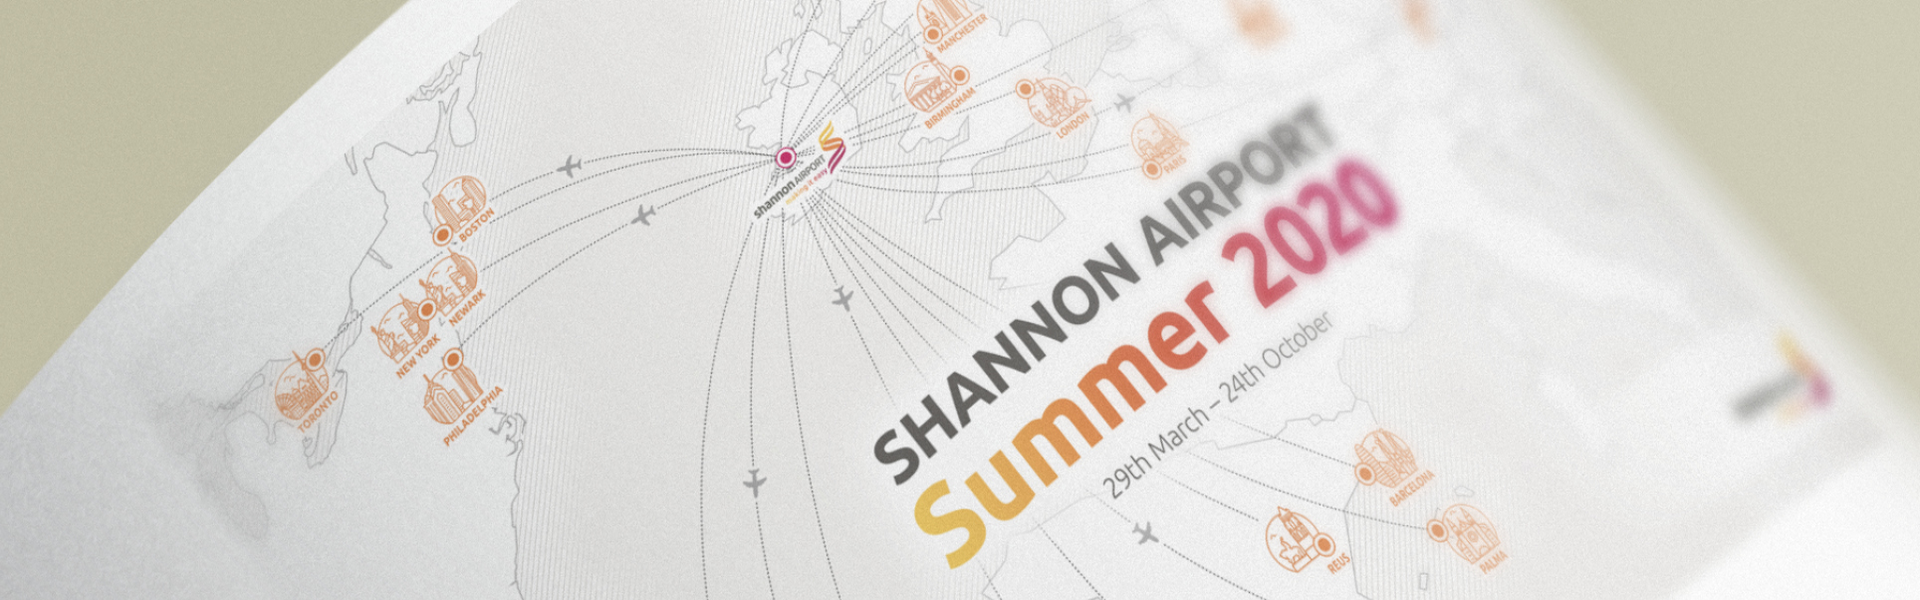 Shannon Airport Summer 2020 Banner